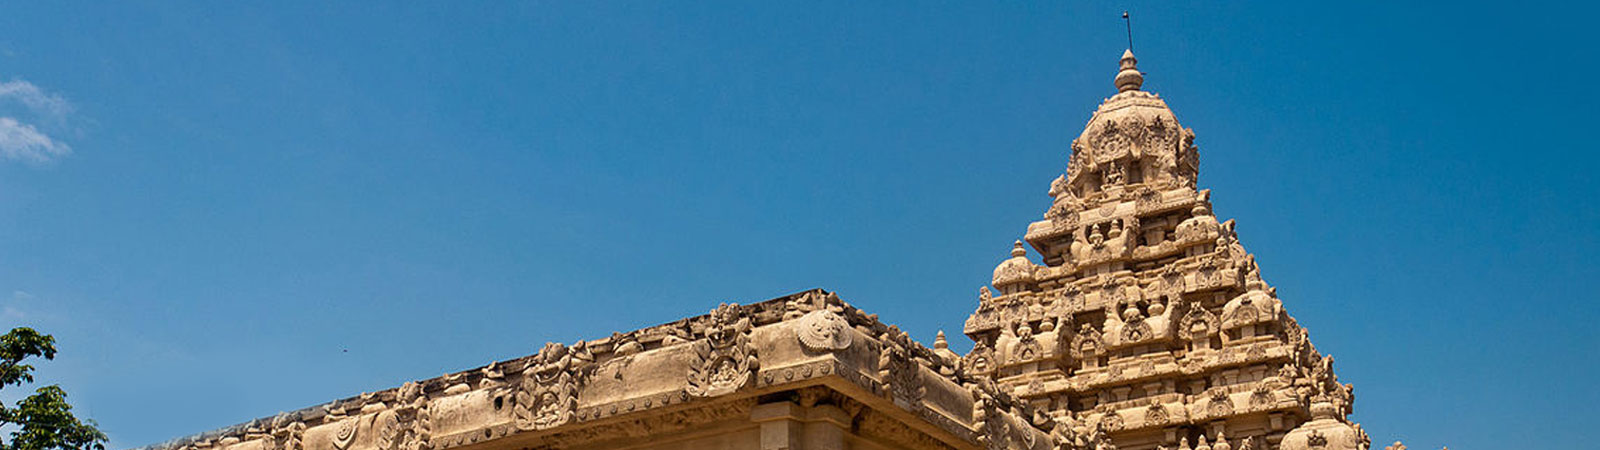 kanchipuram tour package